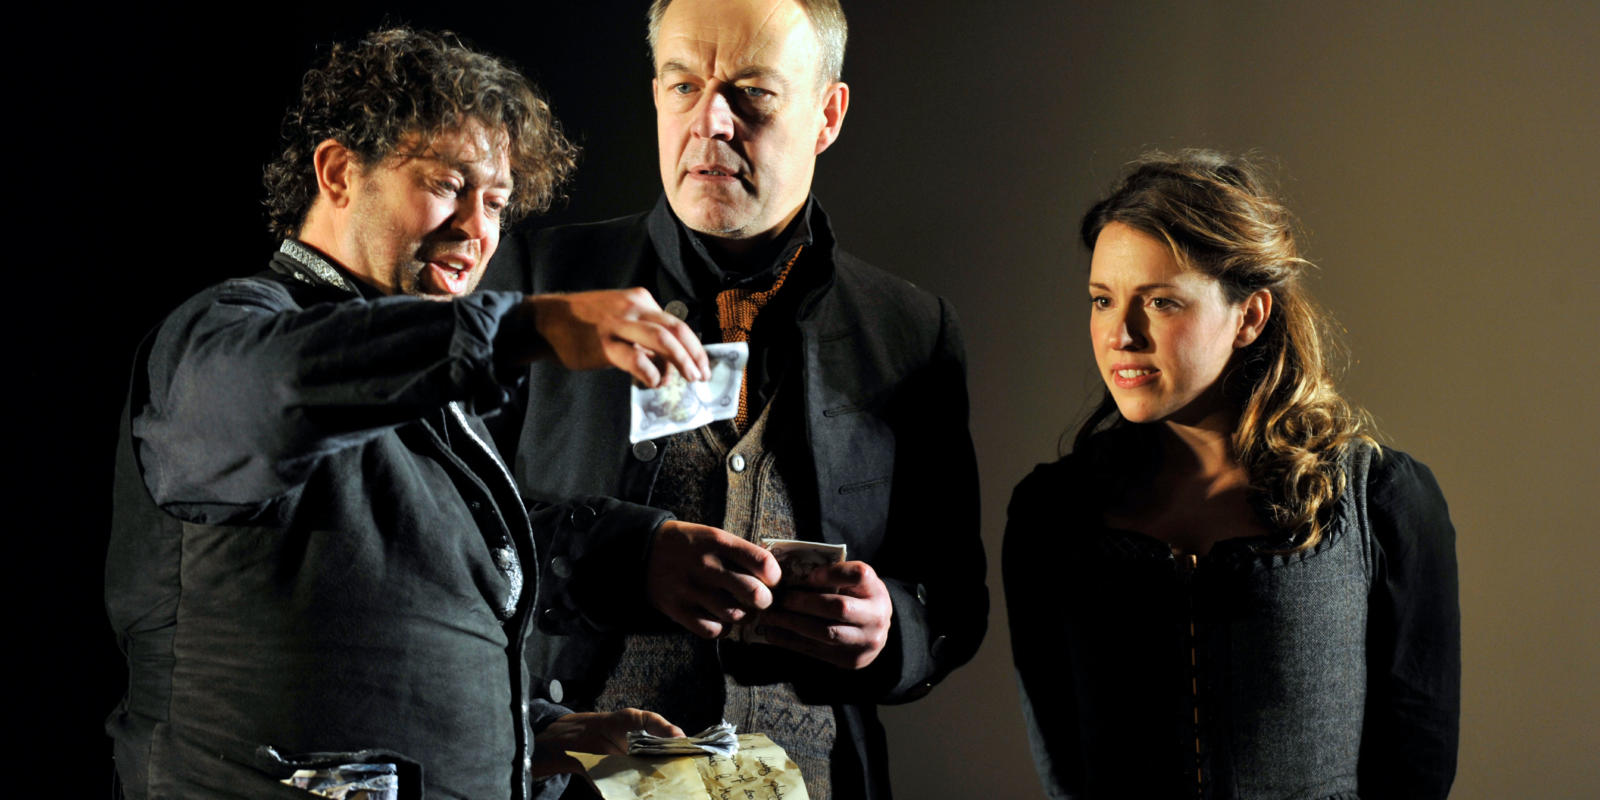 An image of David Stout, Jonathan Best and Mary Bevan in Fiona Shaw's 2014 production of The Marriage of Figaro